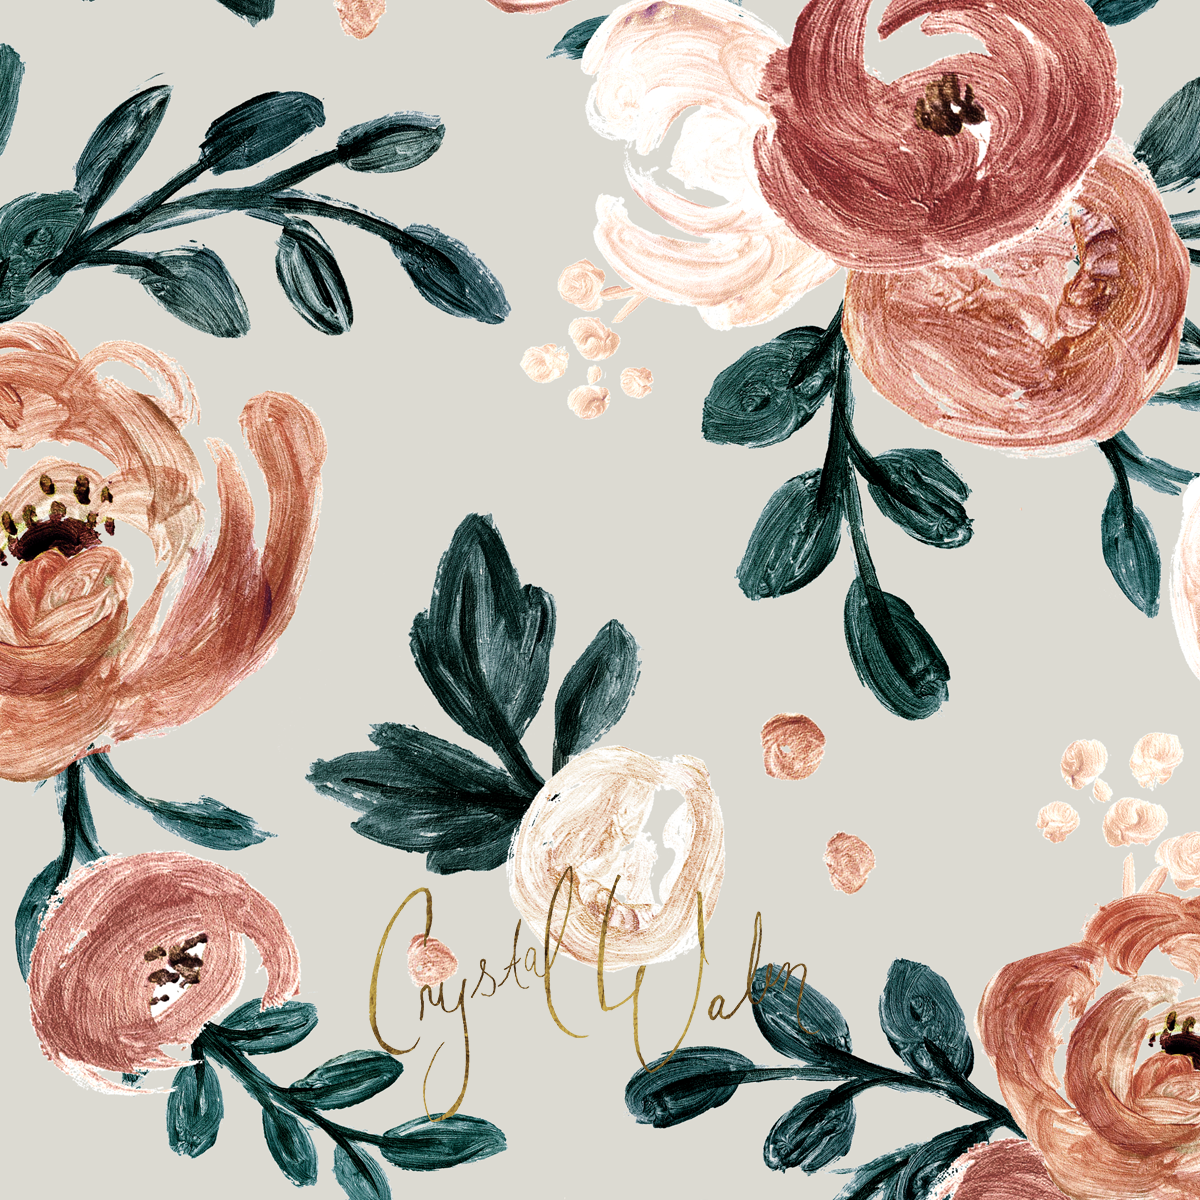 Honey rose in rose gold_ rust_ copper_ teal  cream on gray